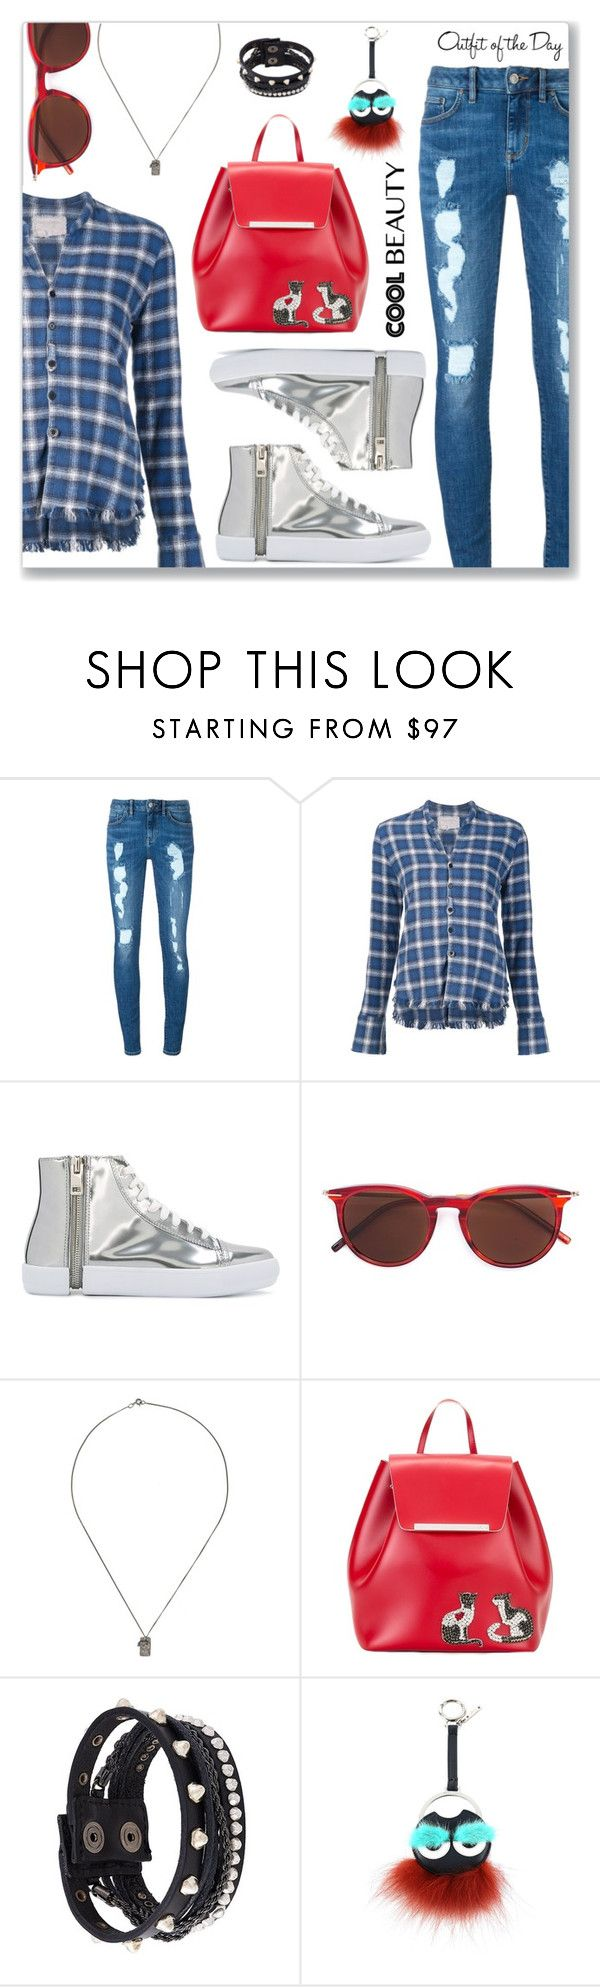 """""""Outfit of the Day"""" by dressedbyrose ❤ liked on Polyvore featuring Tommy Hilfiger, Greg Lauren, Diesel, Tomas Maier, Ros Millar, N°21, Fendi and Petit Bateau"""